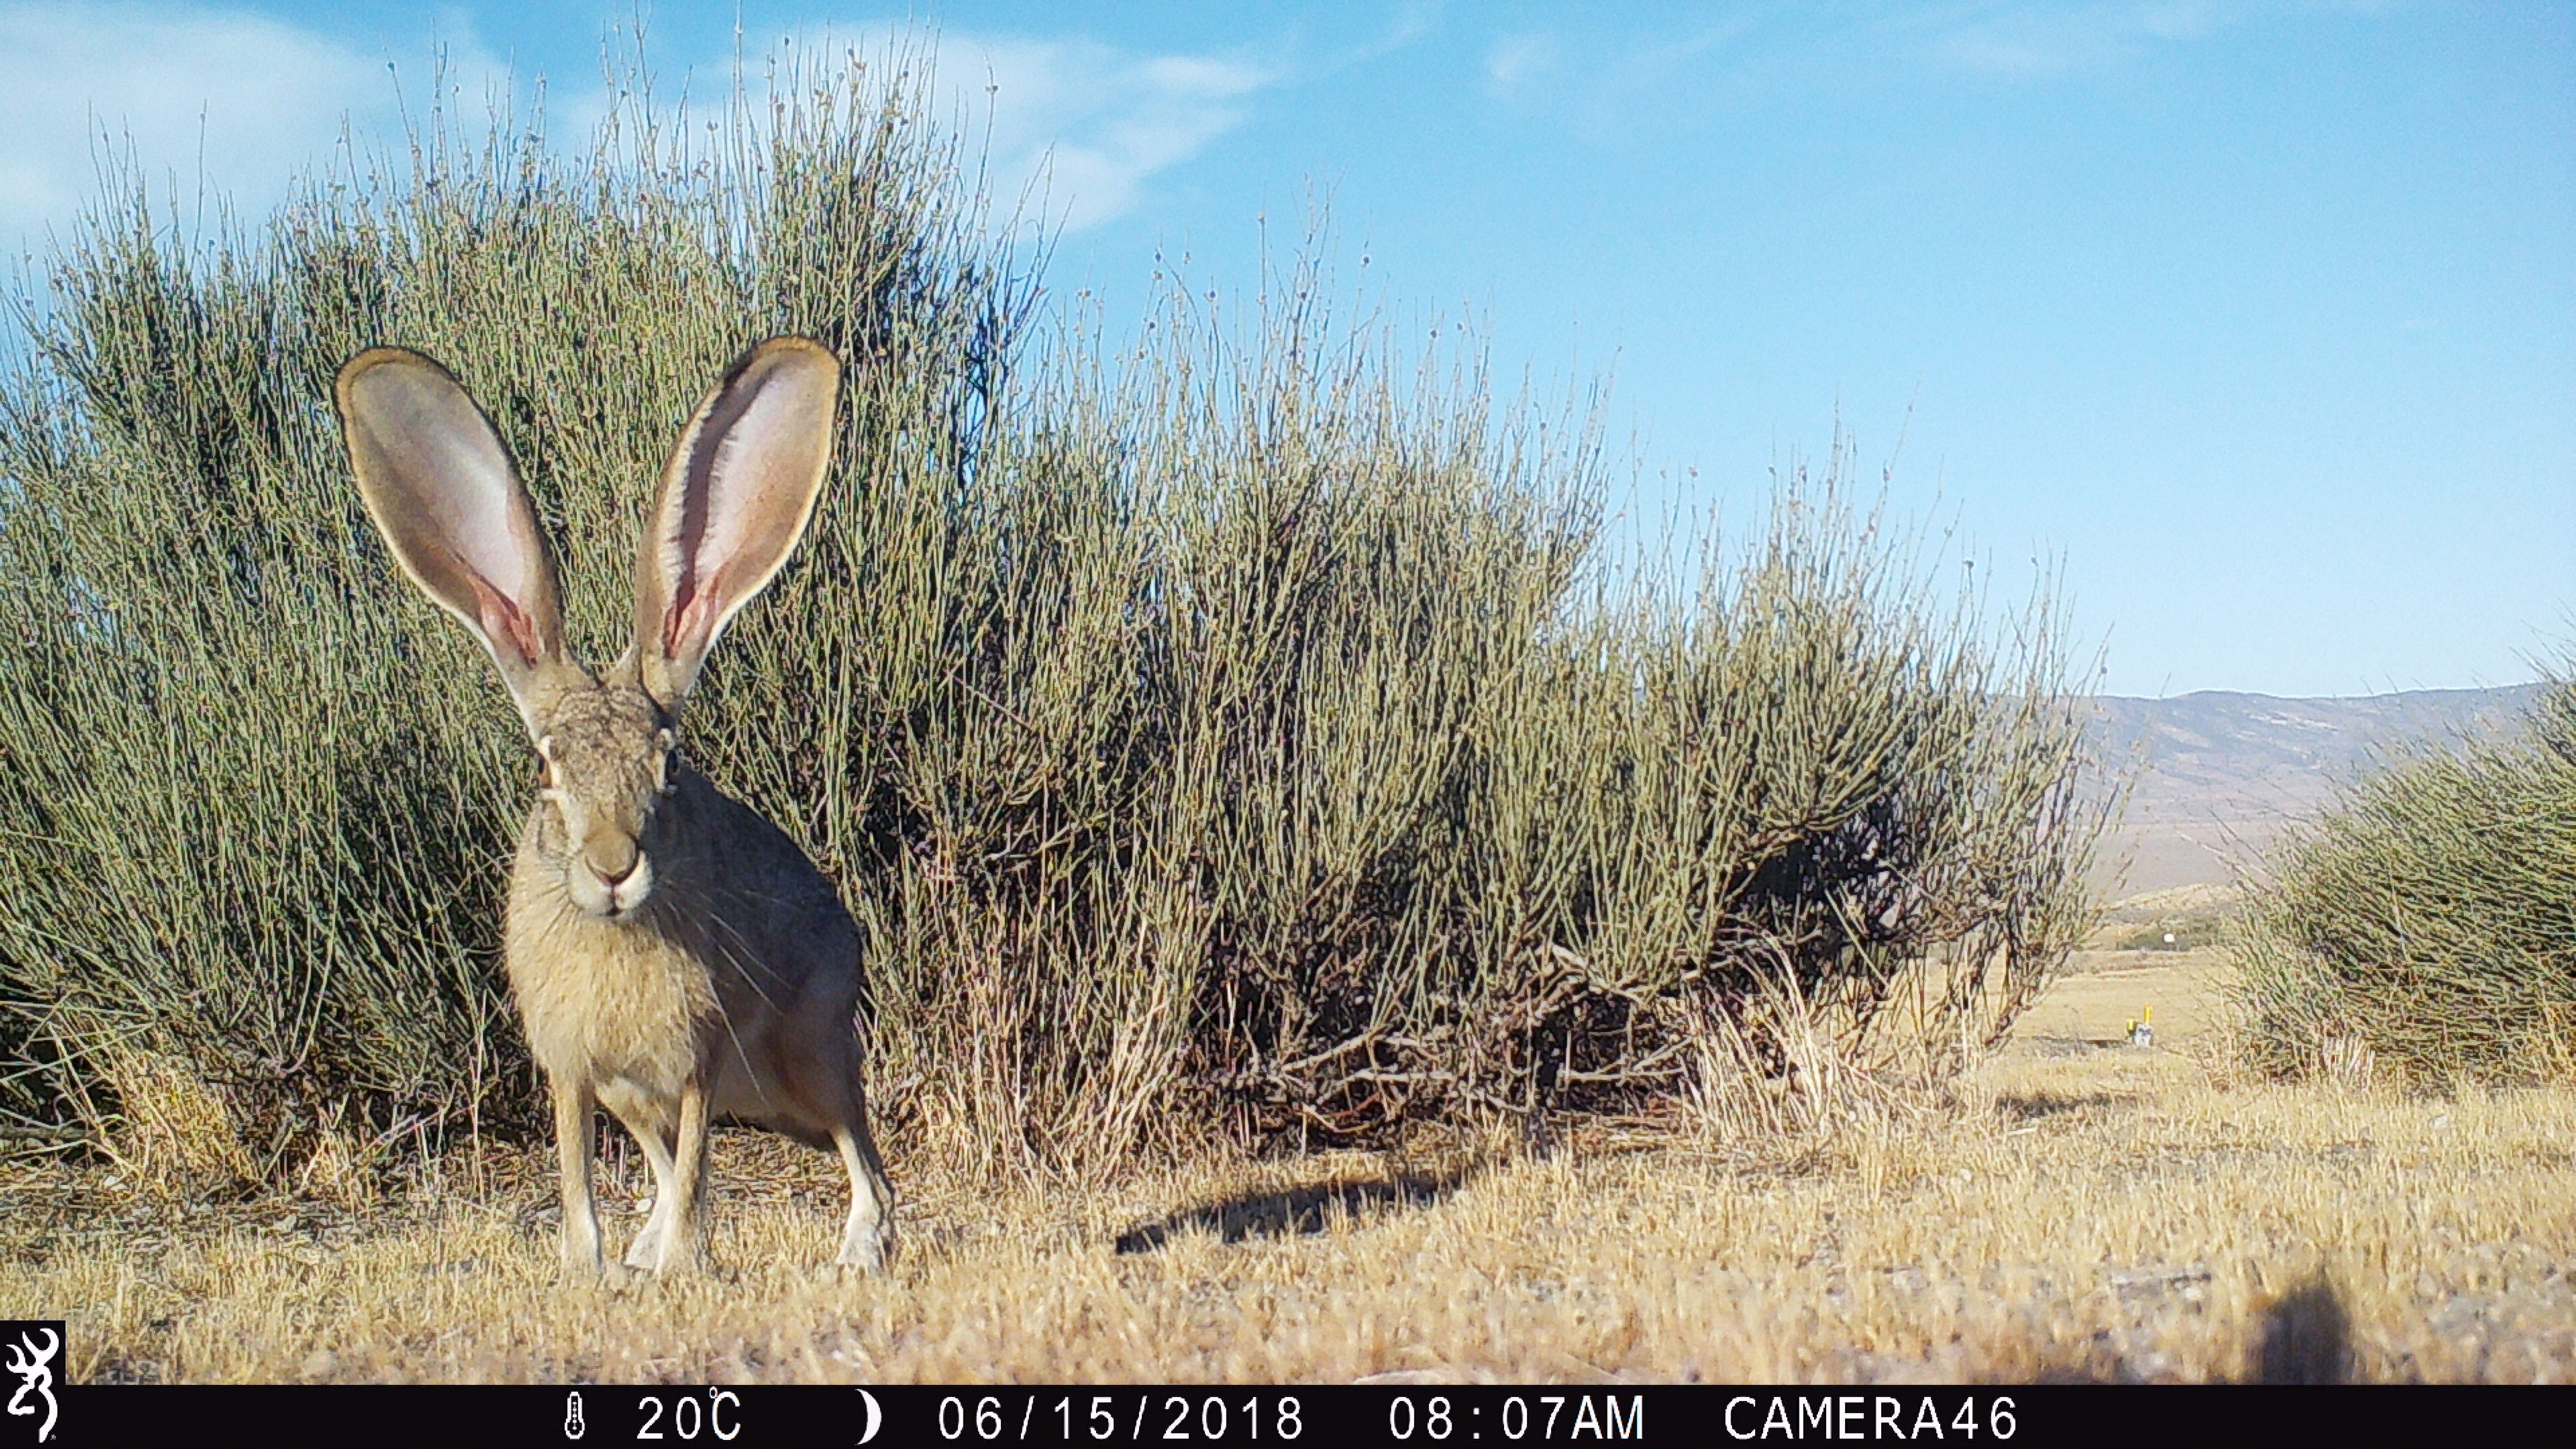 Image of a rabbit taken by a camera trap